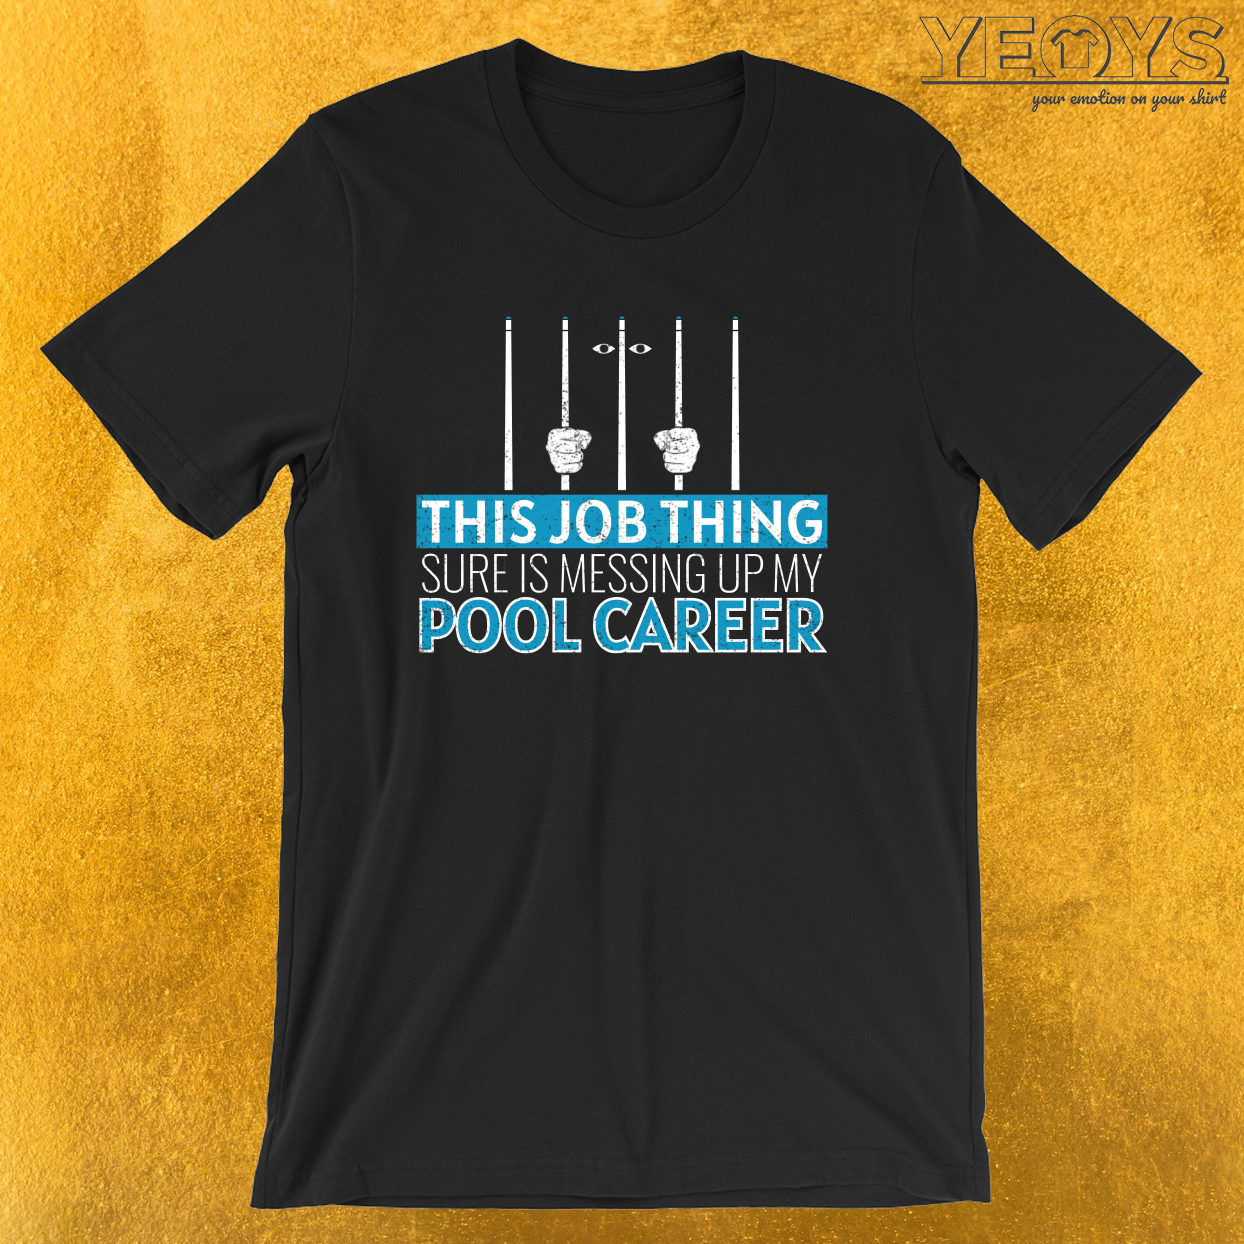 Messing Up My Pool Career – Pool Billiard Tee